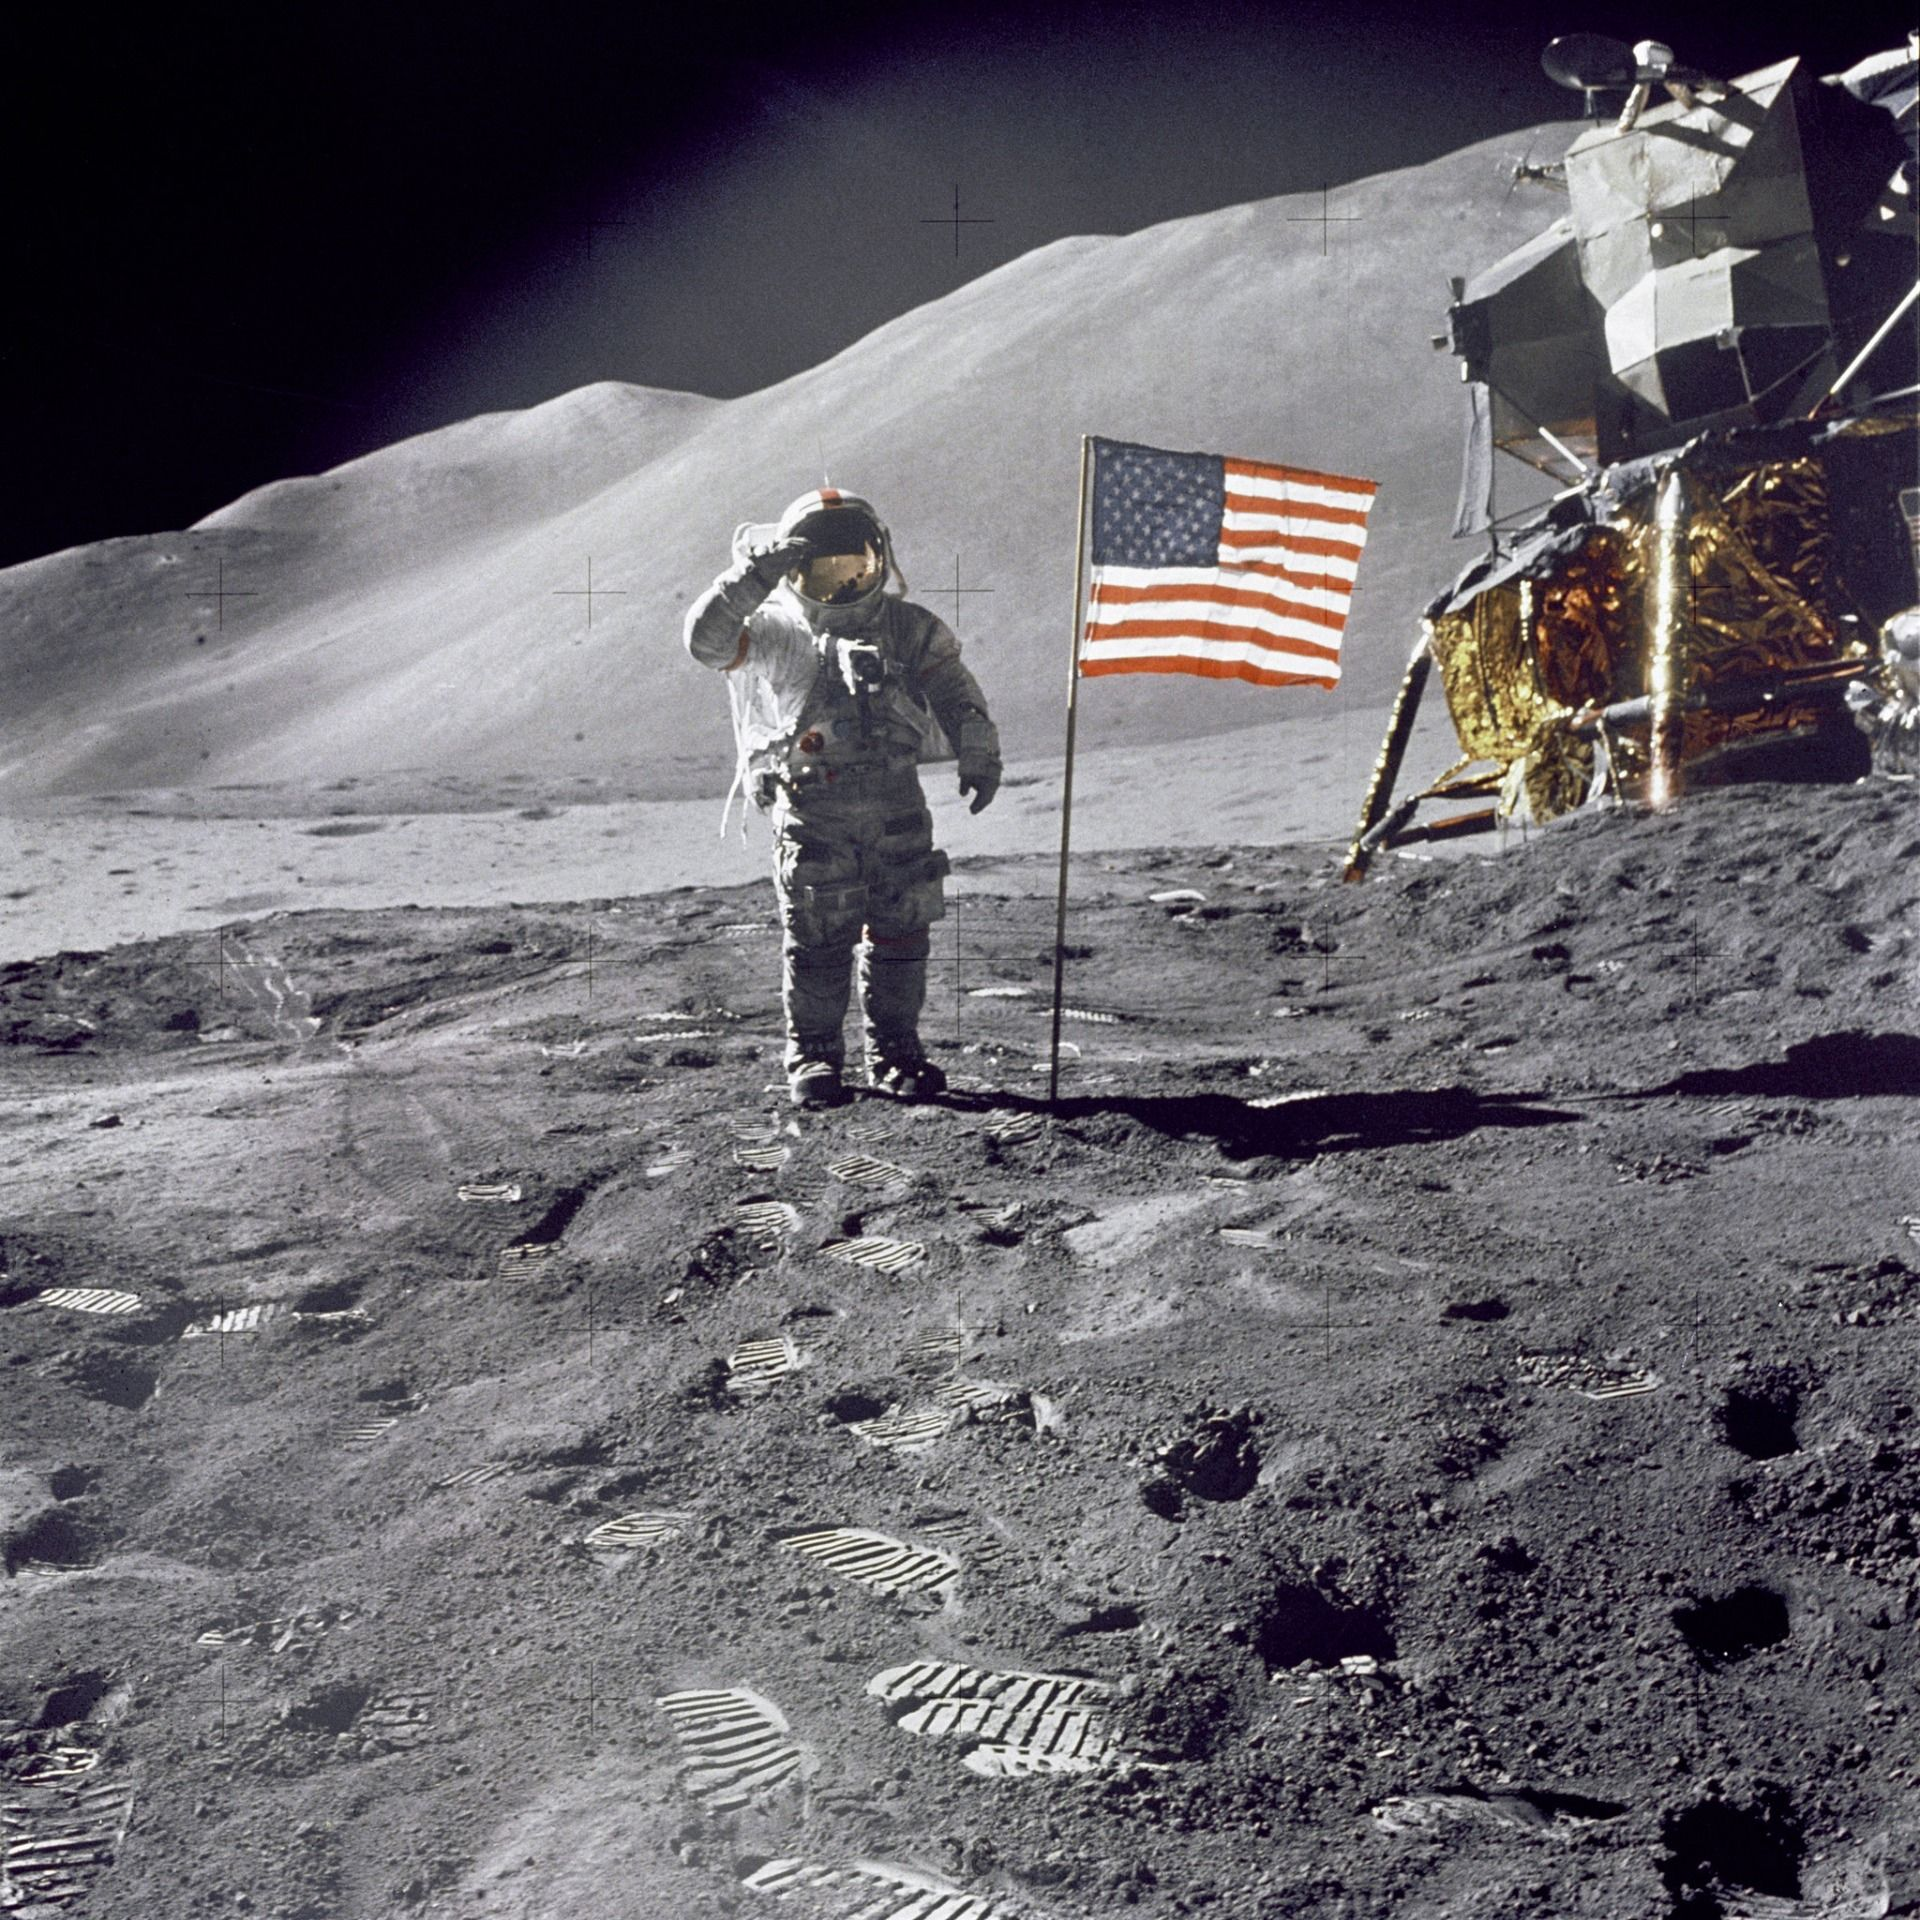 Scott saluting on the lunar surface during Apollo 15